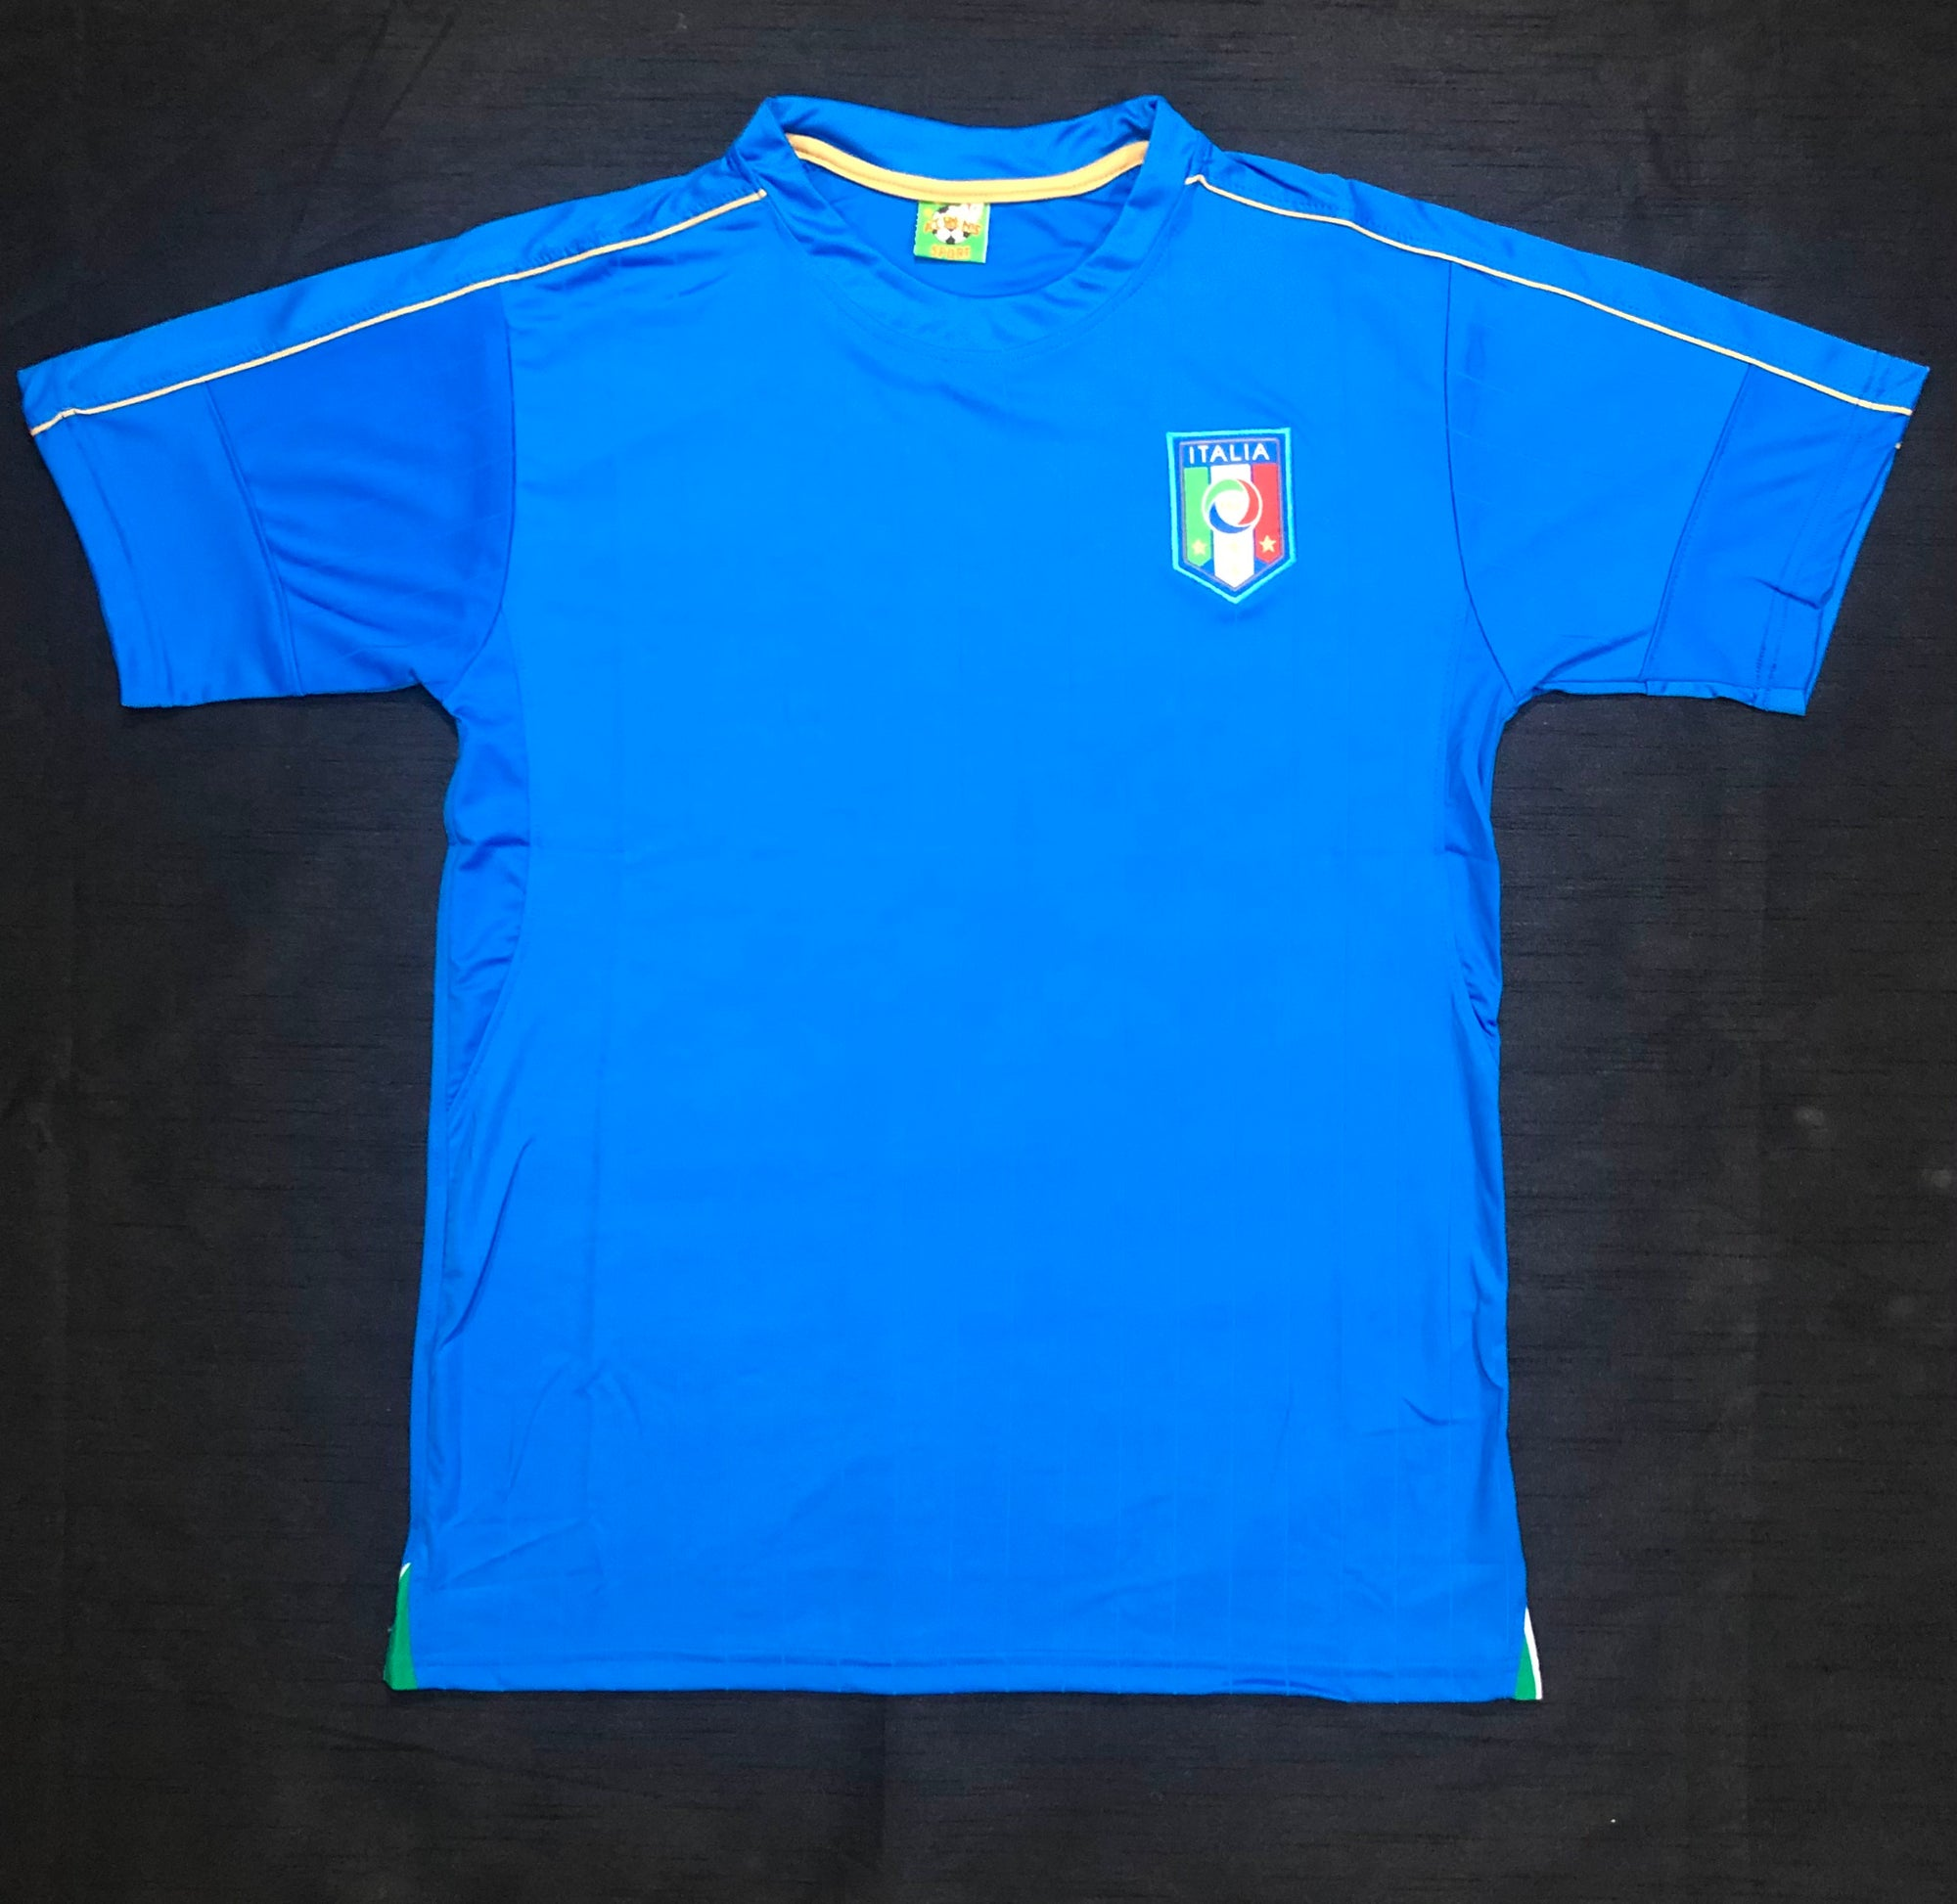 Italy Home Euro2016 Adult Shirt ~ Replica Version